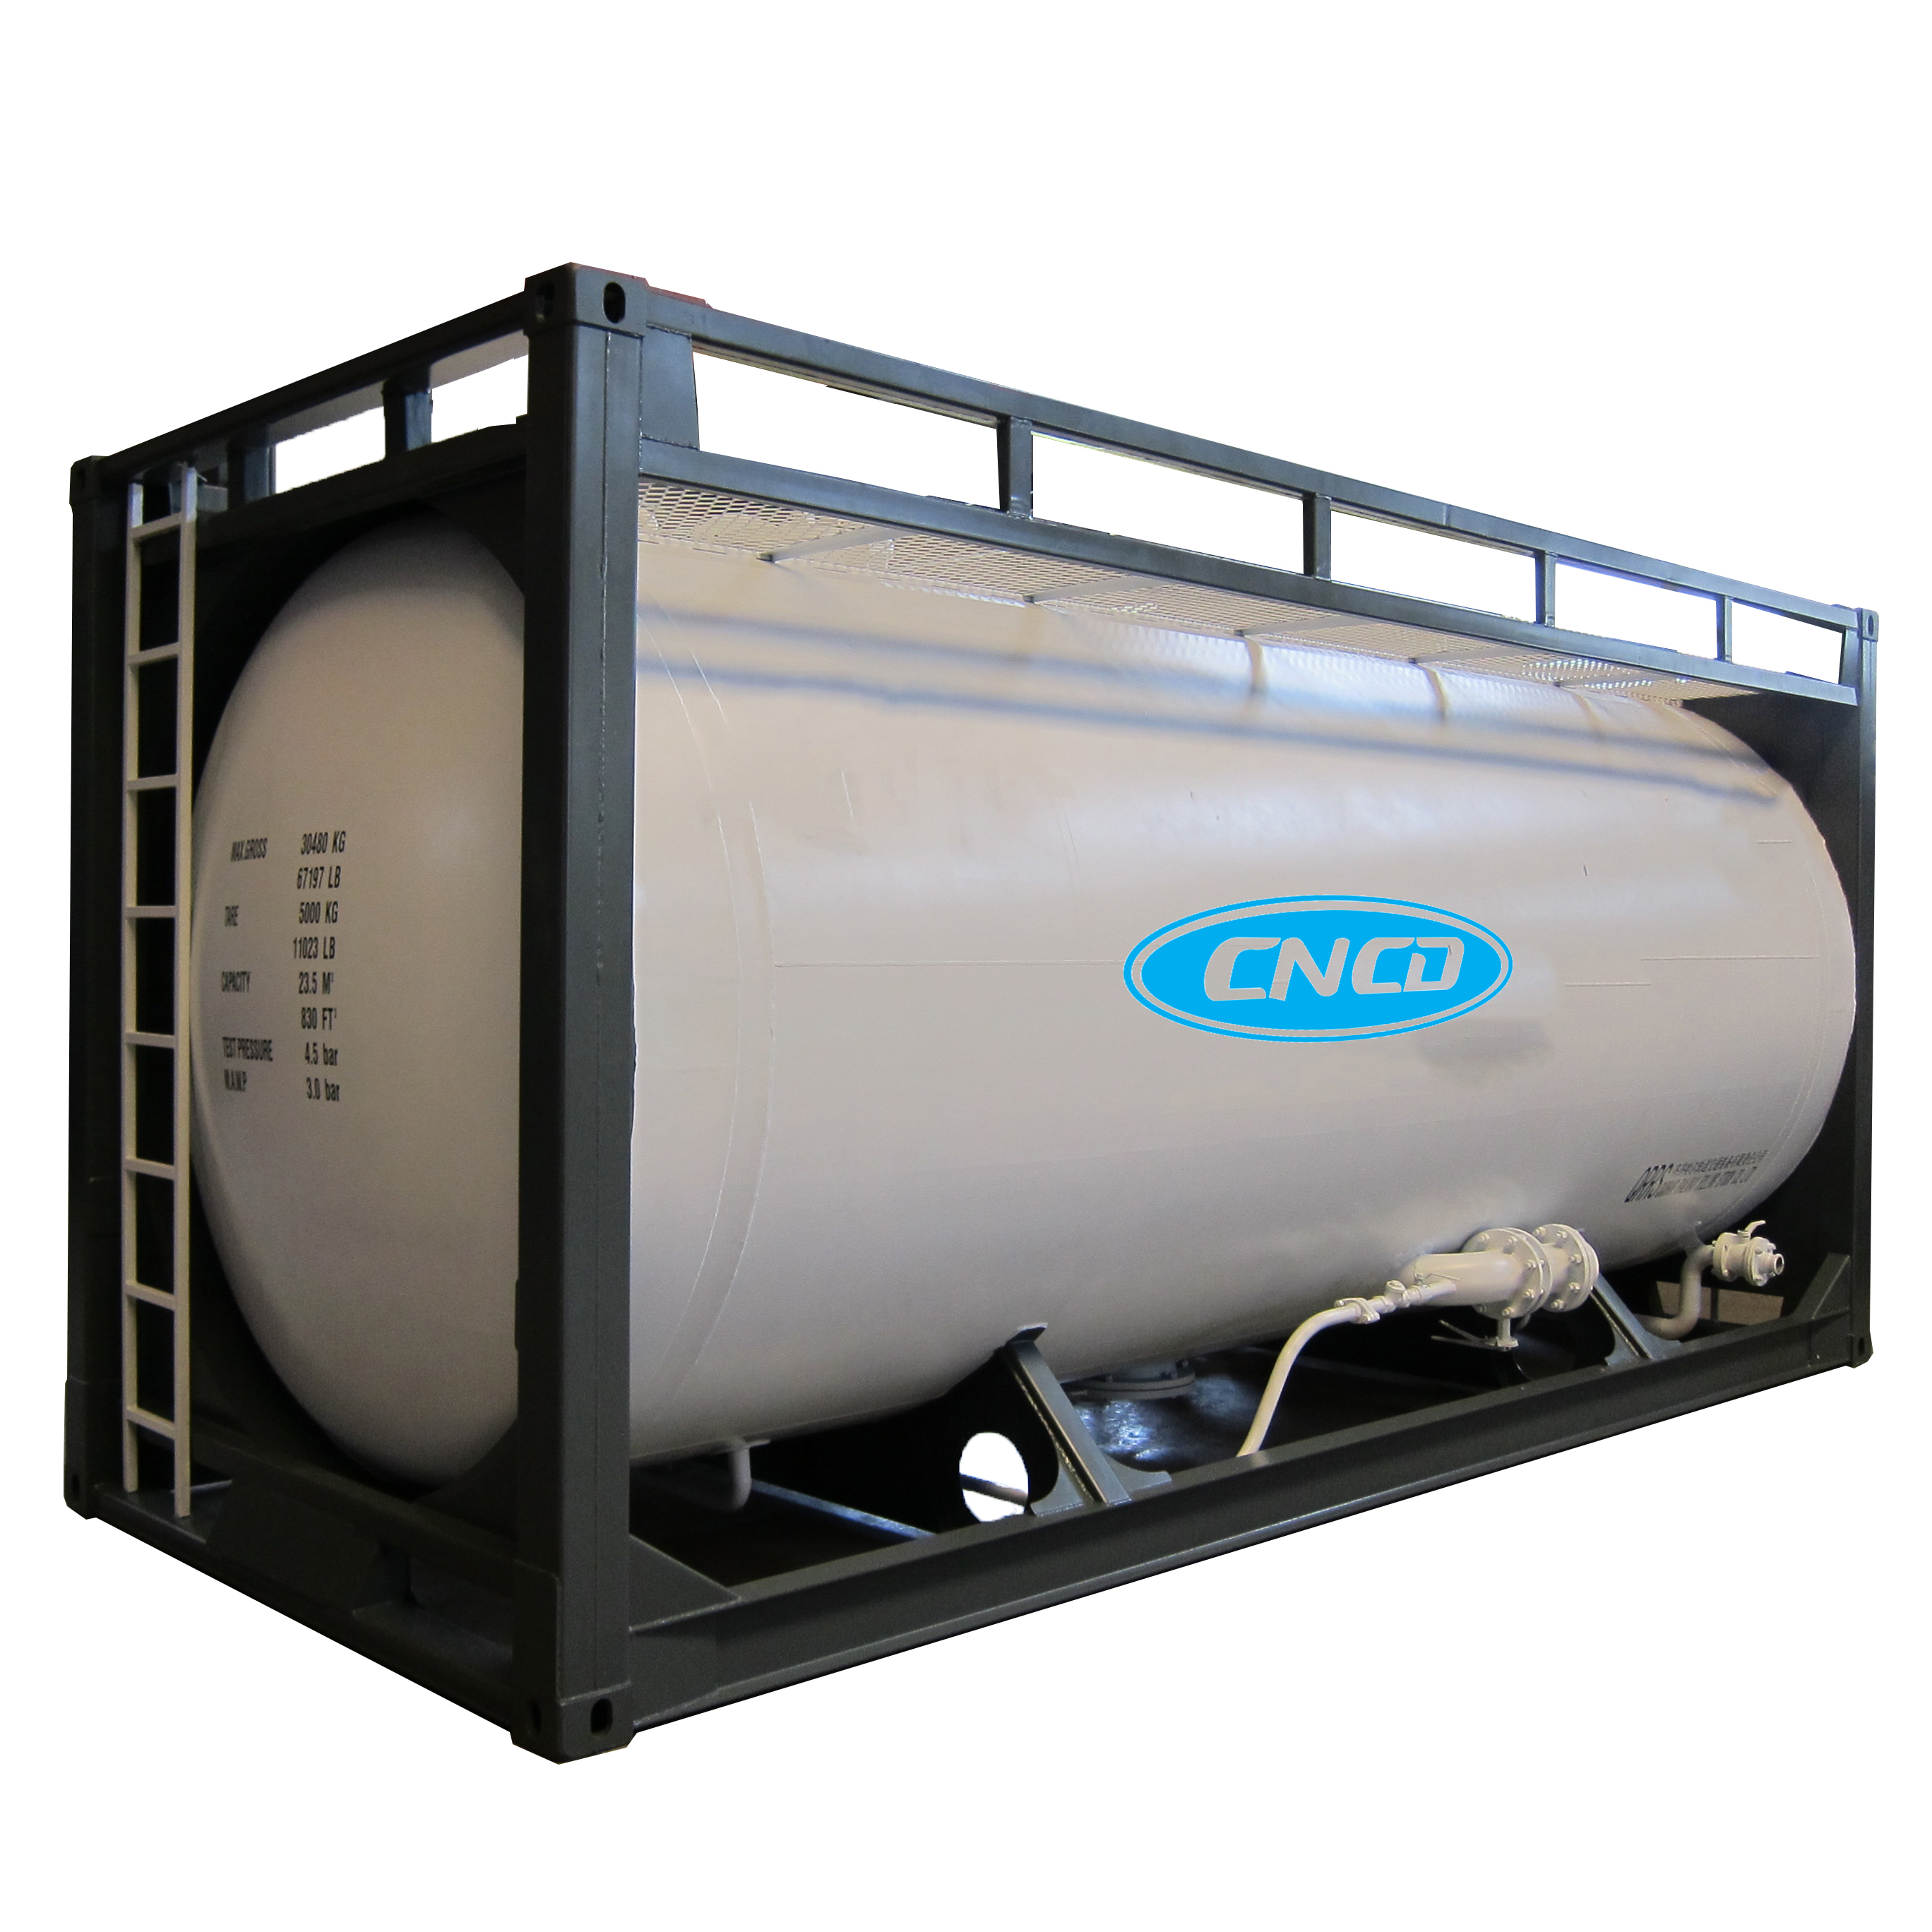 T75/t50 20ft Lpg/lng/cng/lo2/ln2/co2/chlorine/cooking Gas Iso Tank  Container - Buy Cryogenic Container,Cryogenic Container Storage Tank,Tank  Container